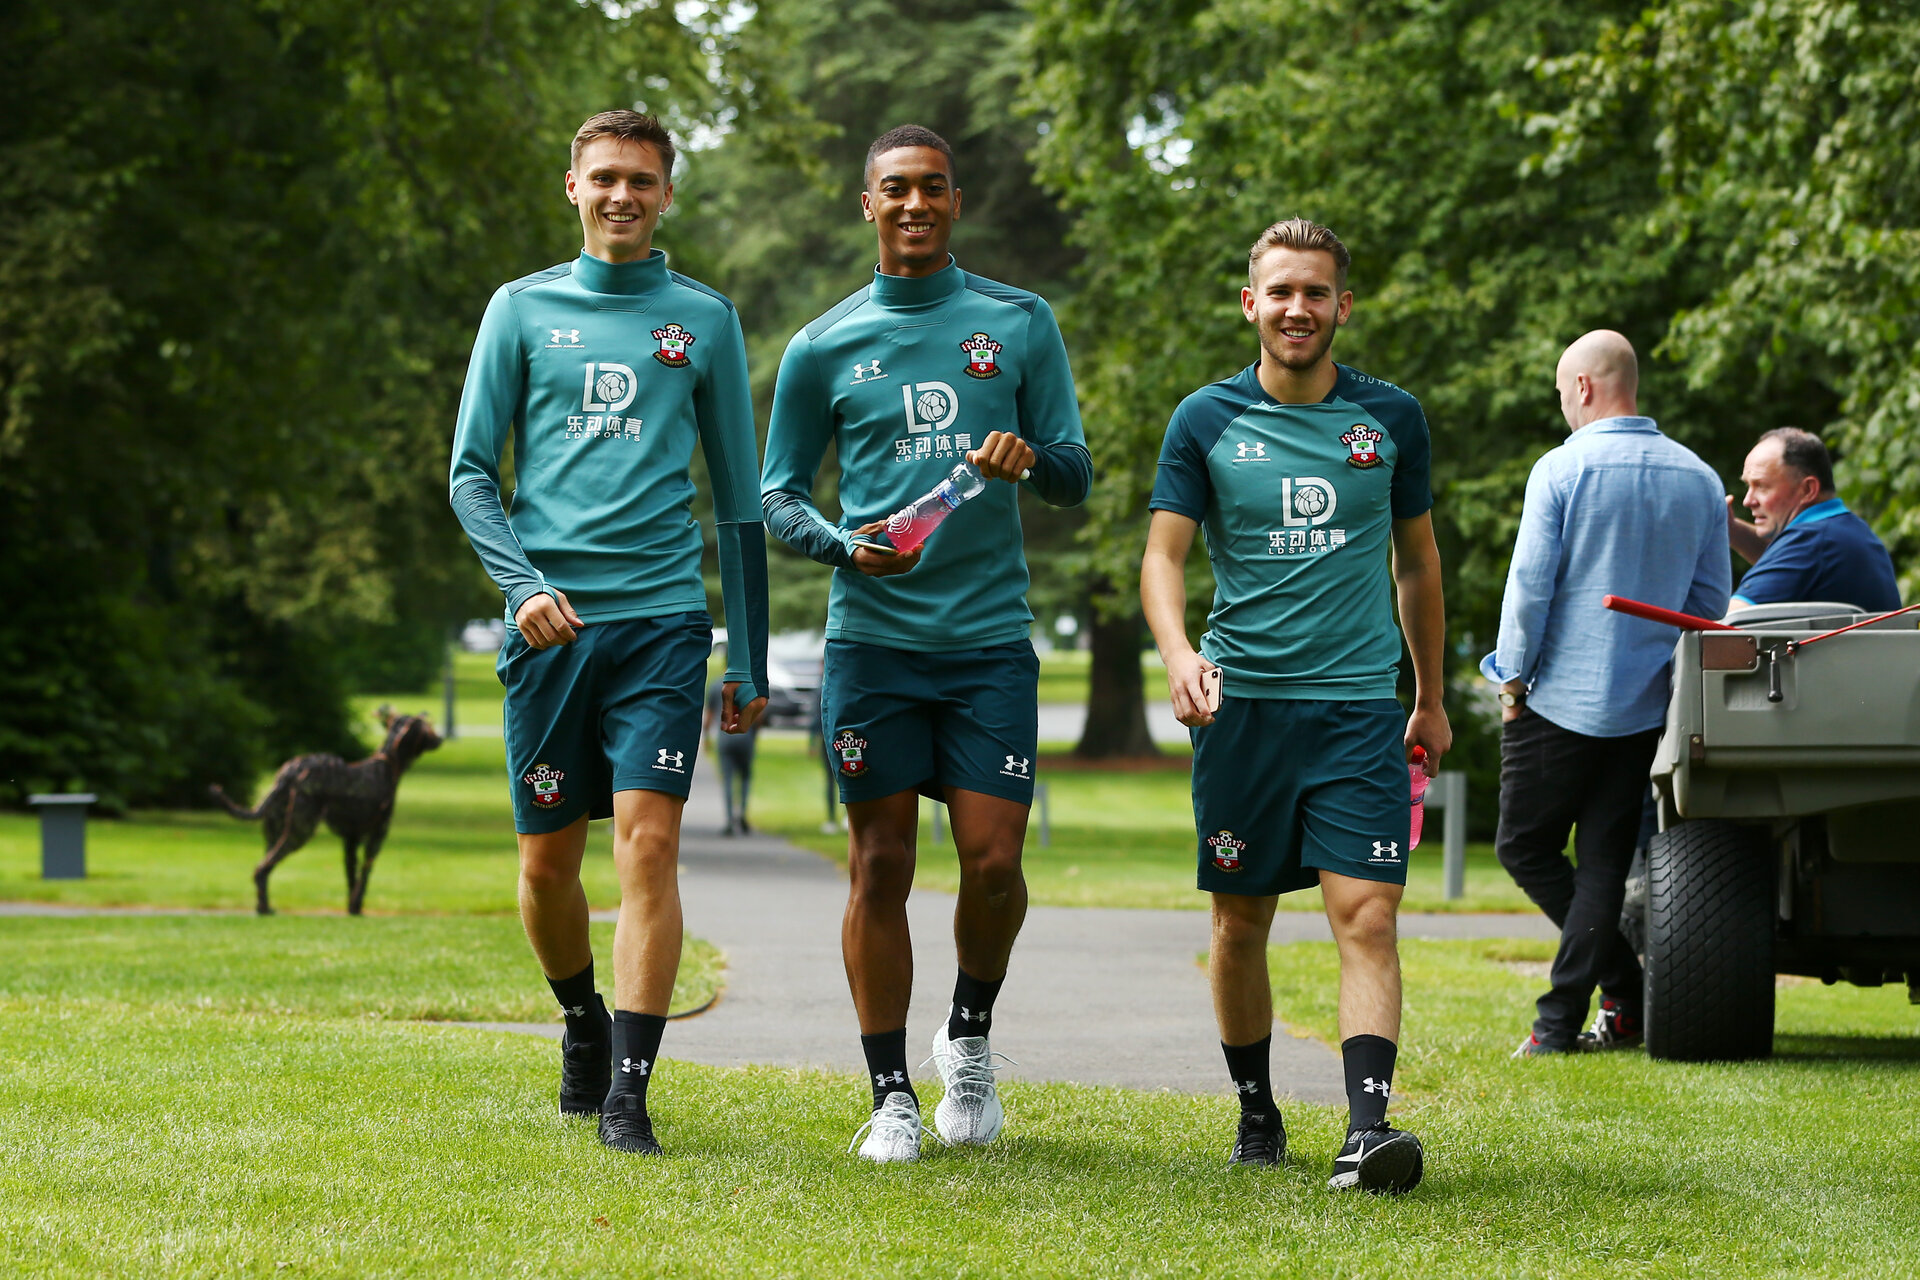 DUBLIN, ENGLAND - JULY 25: LtoR Will Smallbone, Yan Valery, Jake Vokins during a Southampton FC recovery gym session pictured at Carton House Spa and Resort for Pre-Season Training on July 25, 2019 in Southampton, England. (Photo by James Bridle - Southampton FC/Southampton FC via Getty Images)